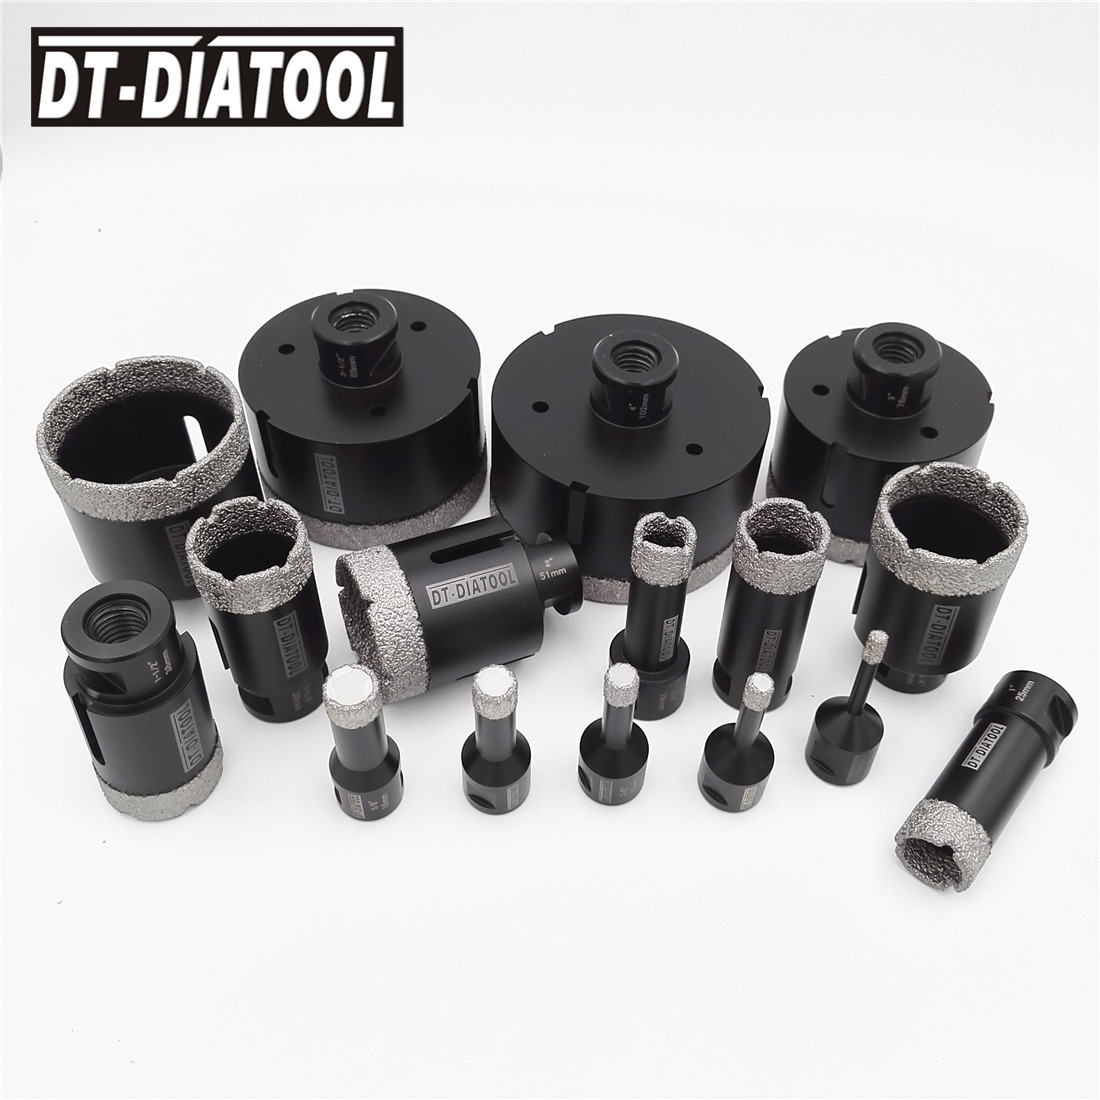 Vacuum Brazed Diamond Dry Drill core Bits 5/8-11 Thread Drilling bits hole saw Diameter 6mm to 102MM for tile marble granite diatool 5pcs set vacuum brazed diamond drill core bits with 15mm teeth 20 32 45 55 68mm hole saw granite marble ceramic tile